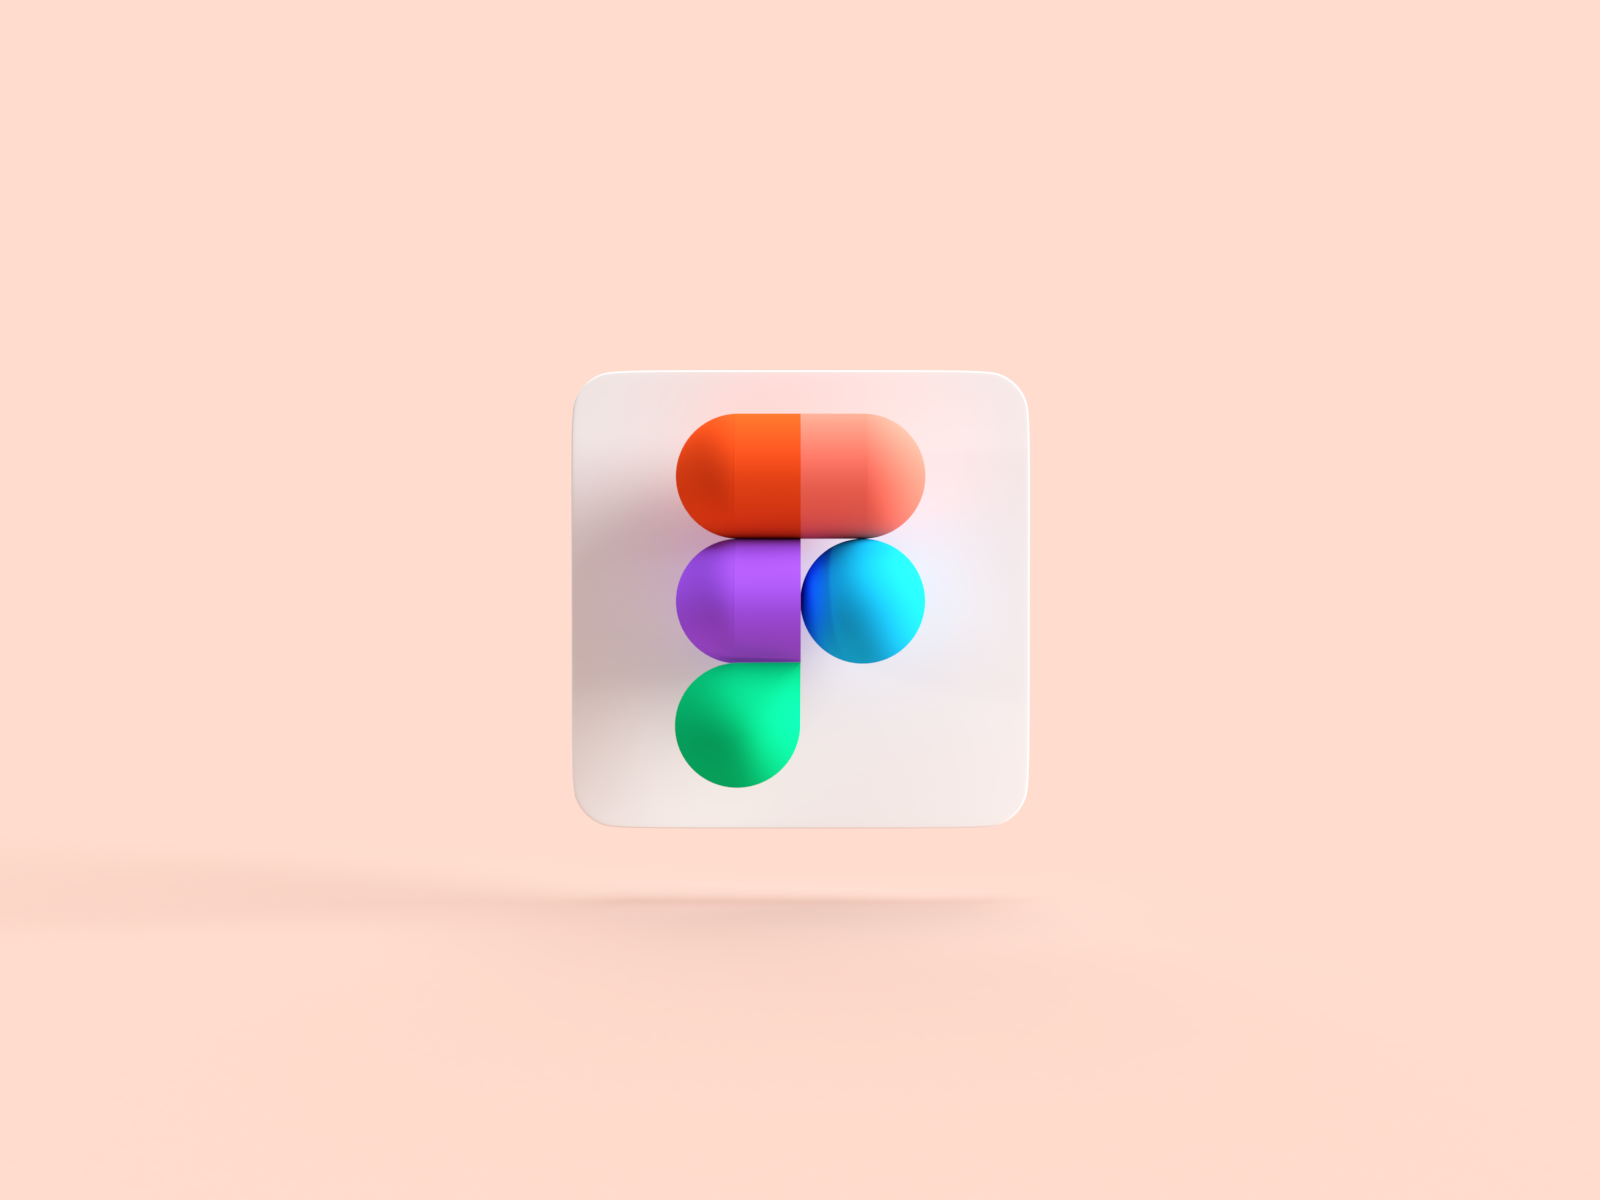 Figma 3d Icon For Mac Os Big Sur In 2020 3d Icons Figma Mac Os